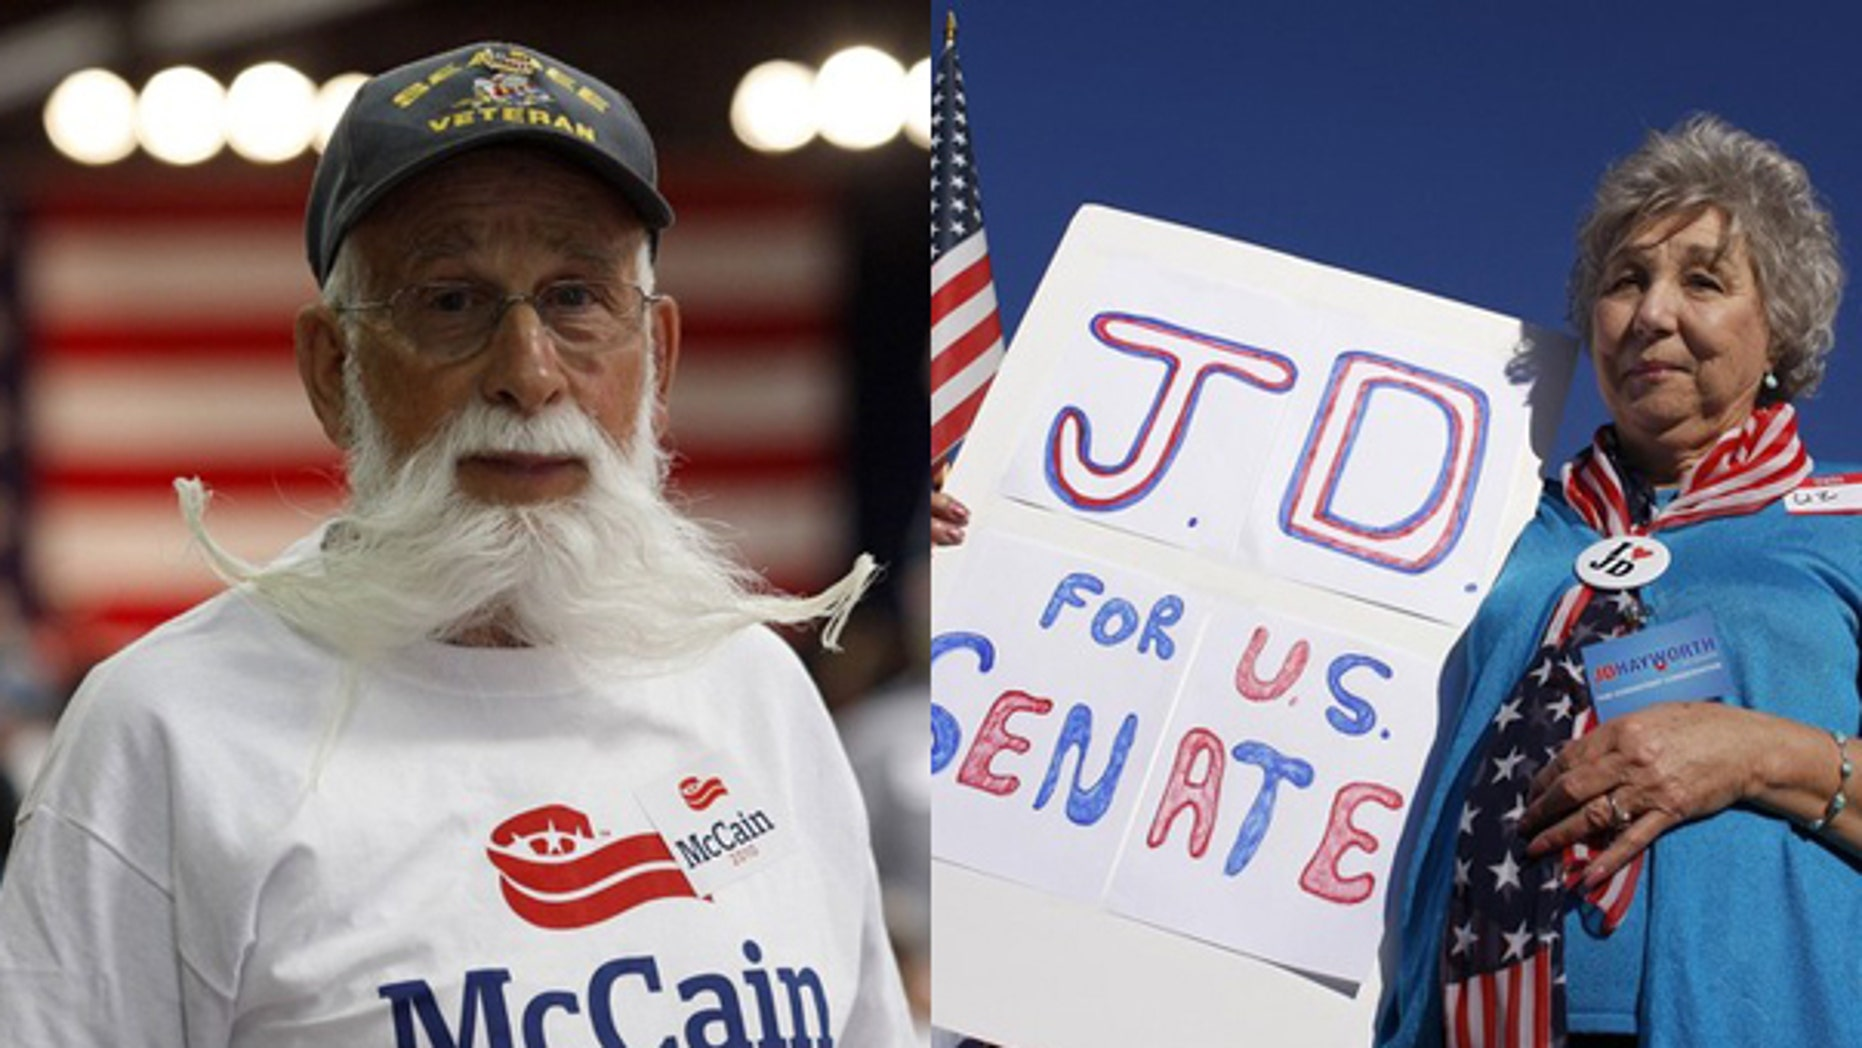 Supporters for Arizona Republican Senate primary opponents John McCain and J.D. Hayworth come out to cheer on their candidates. (Reuters/AP)